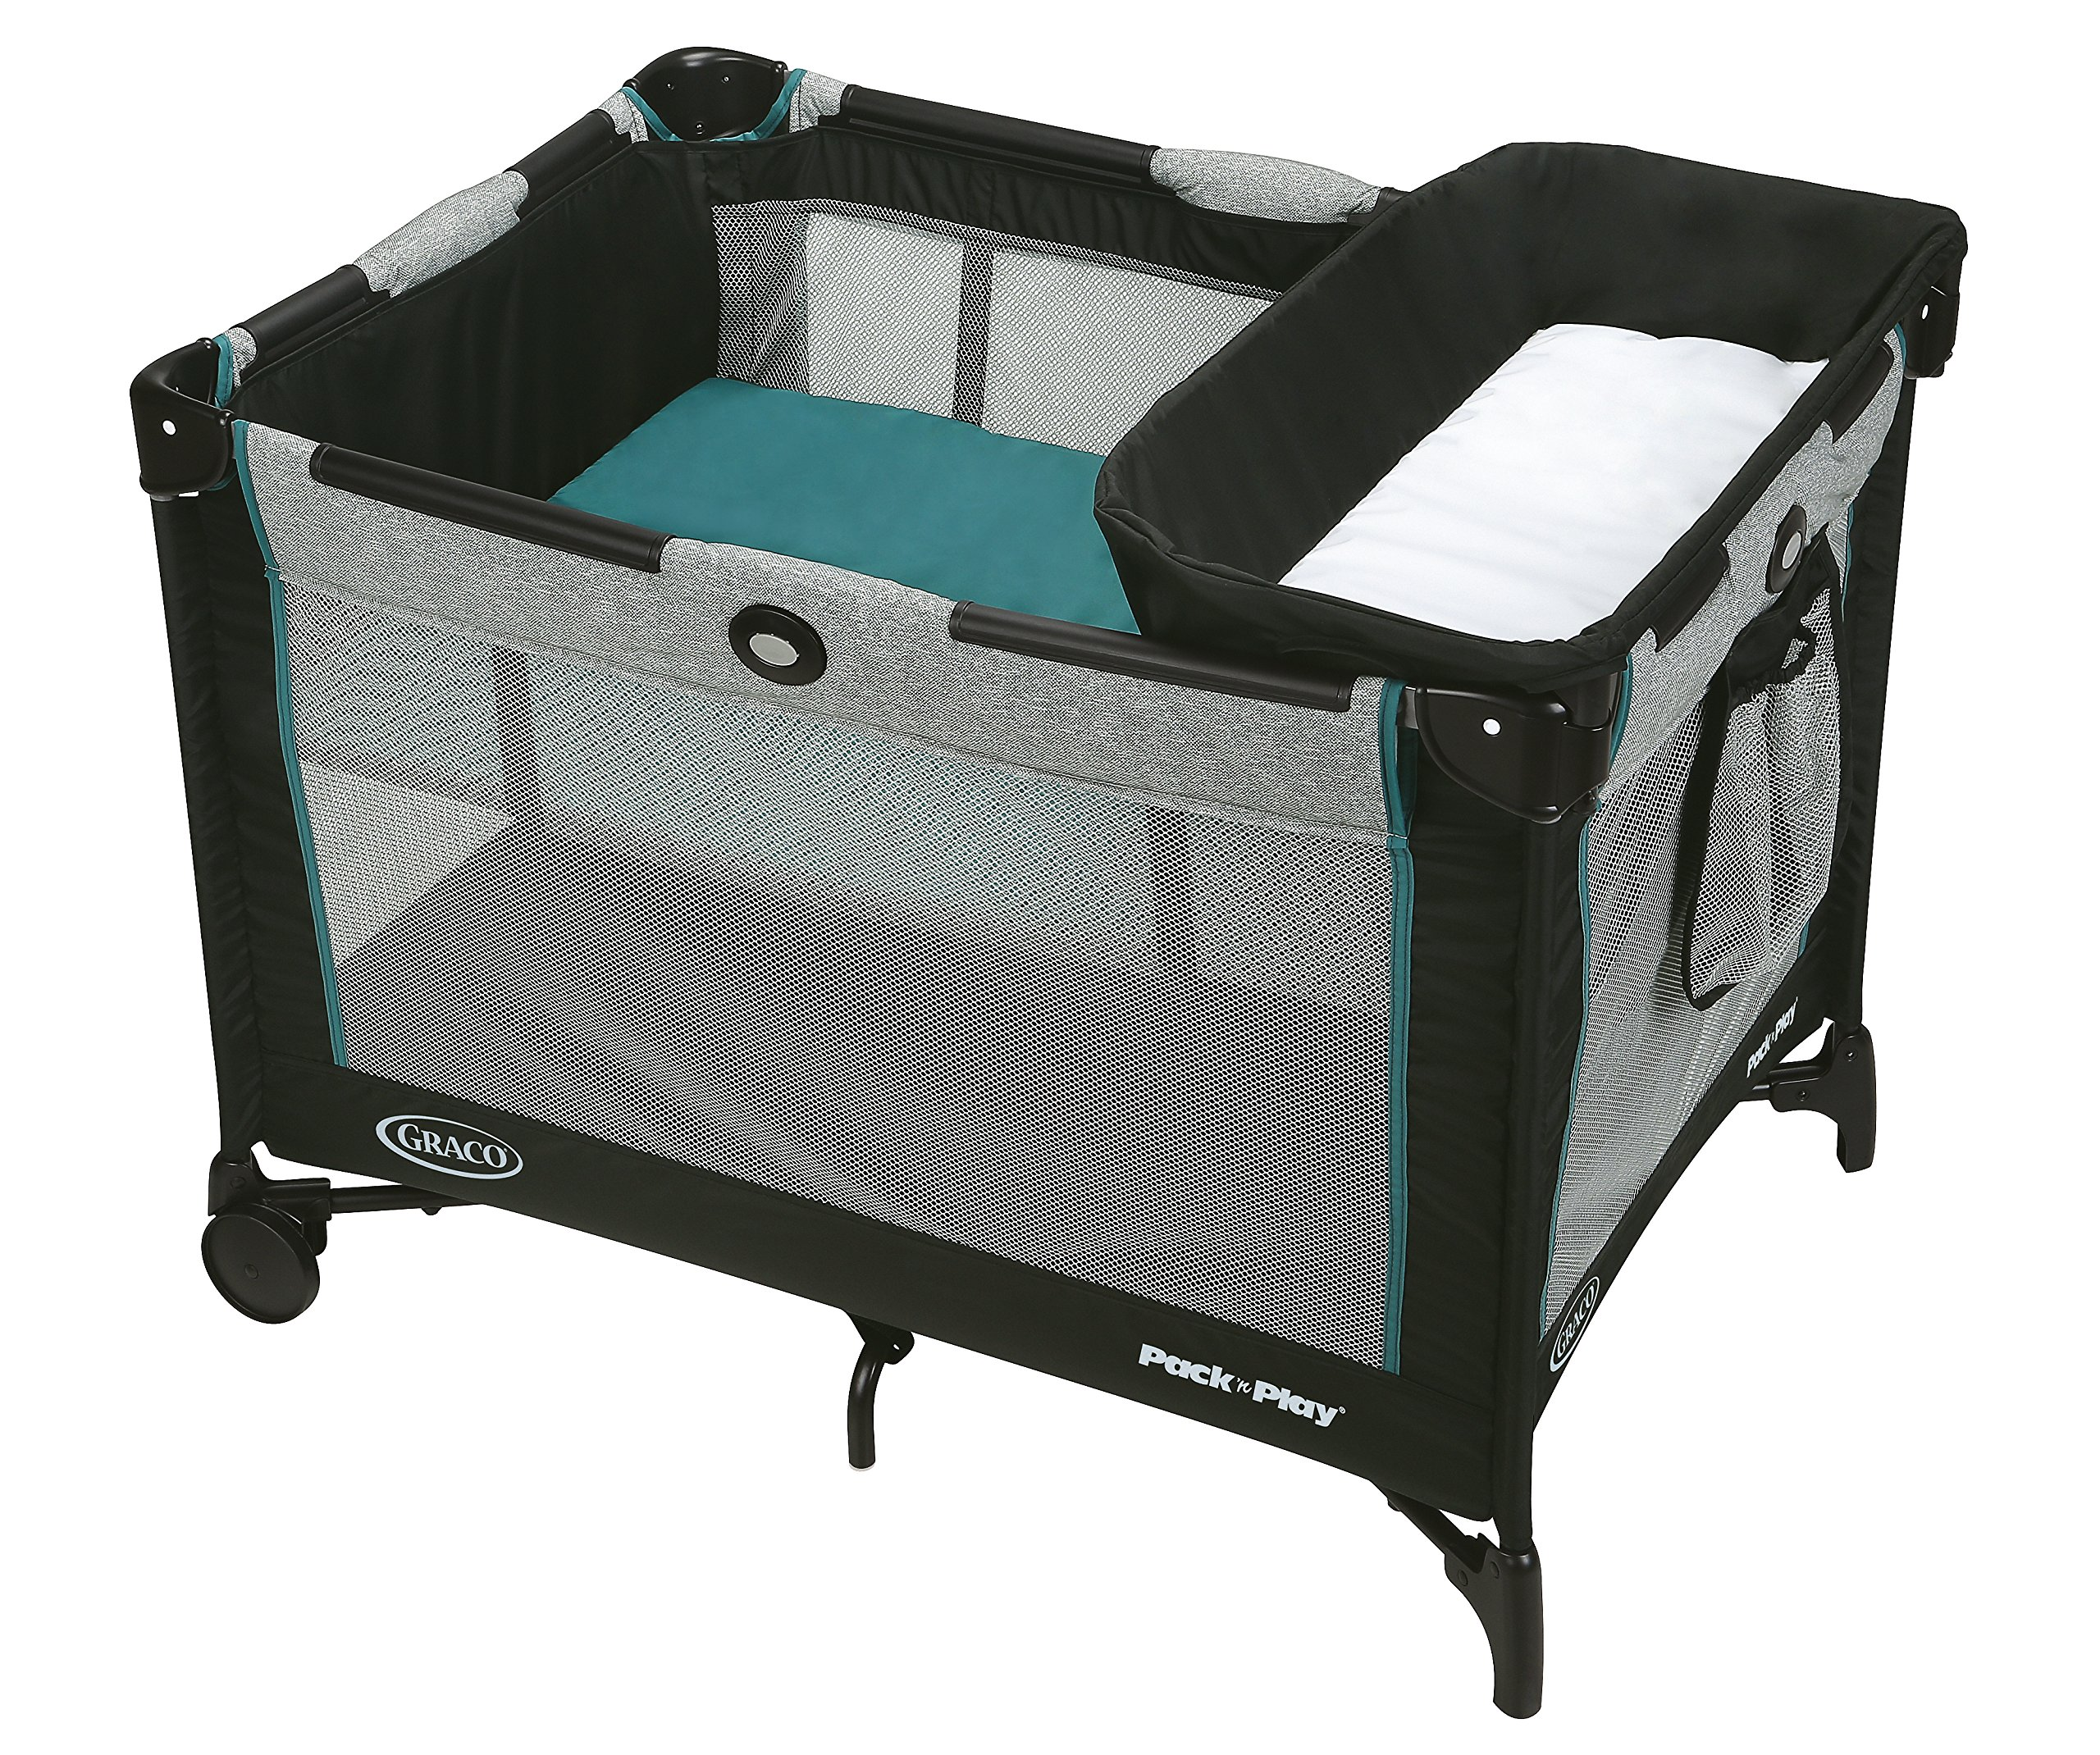 playard r portable guava lotus baby com the amazon cribs crib and family x exciting bed travel